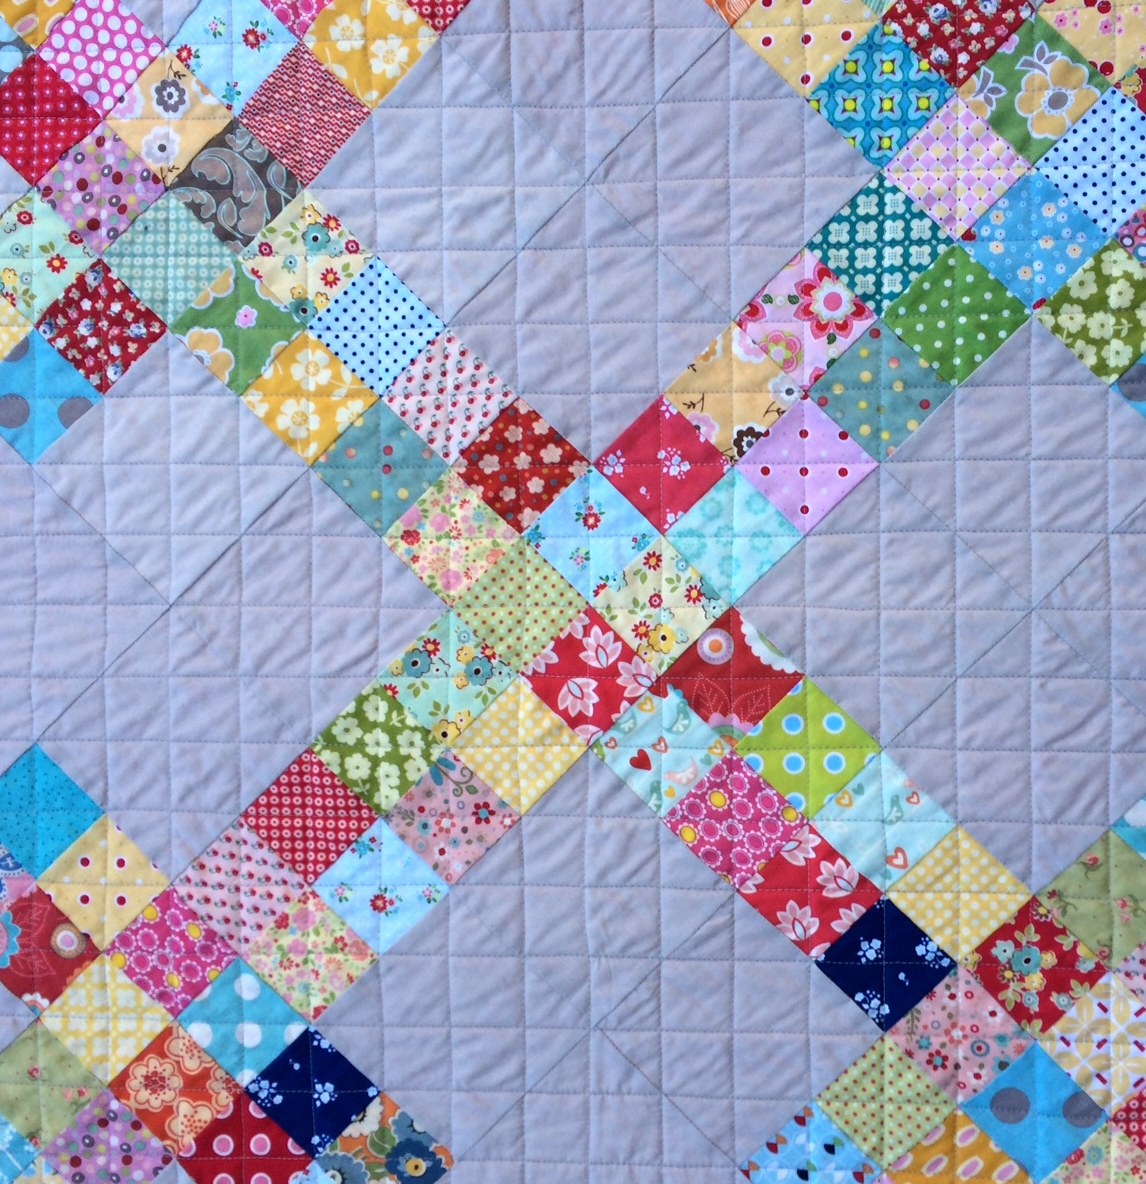 Free quilt patterns the piper 39 s girls for How to make a quilt template